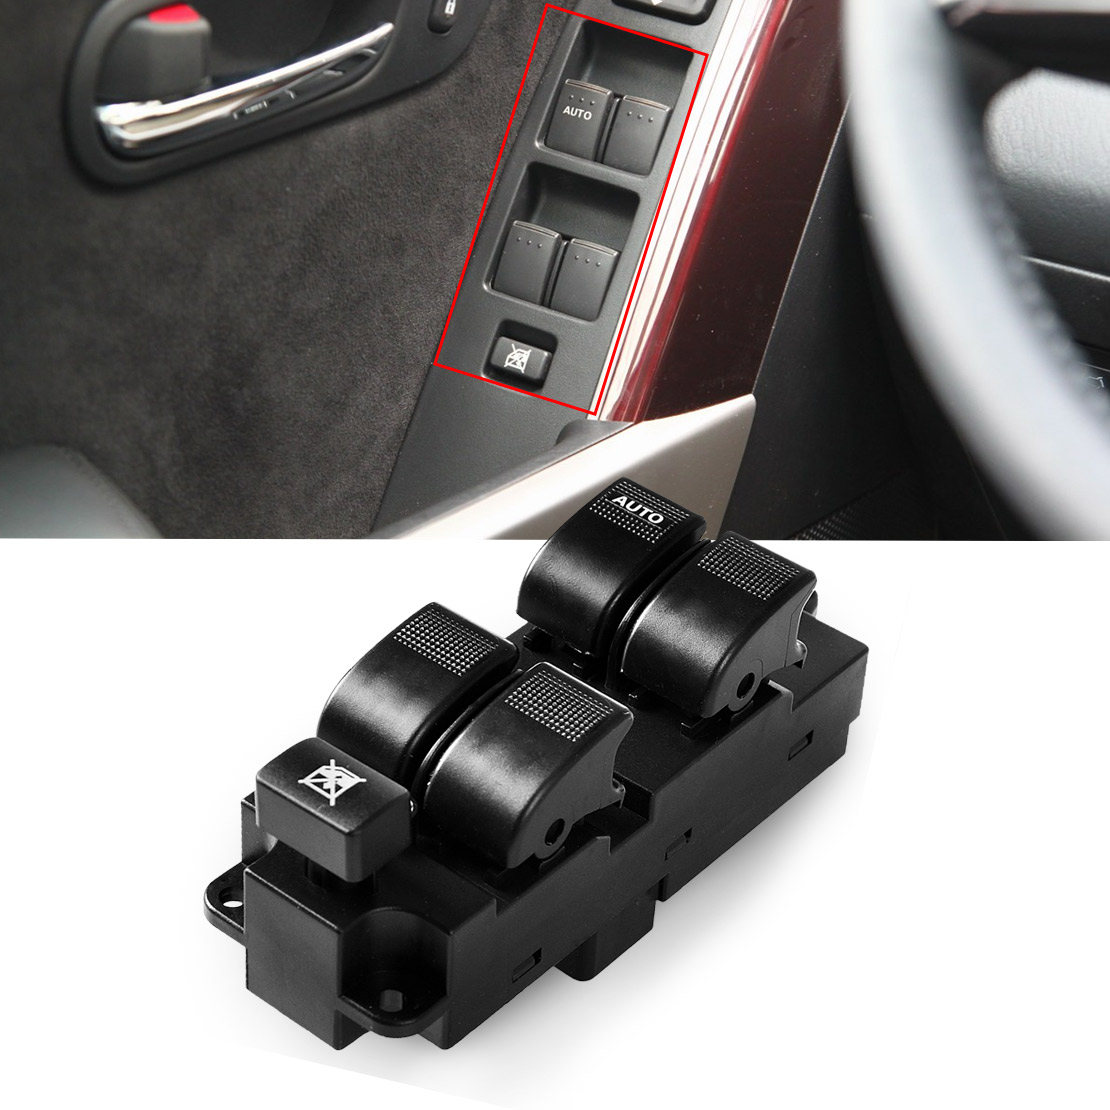 Dwcx gg2a66350 power window master switch left hand driver side fit for mazda 626 mpv 2001